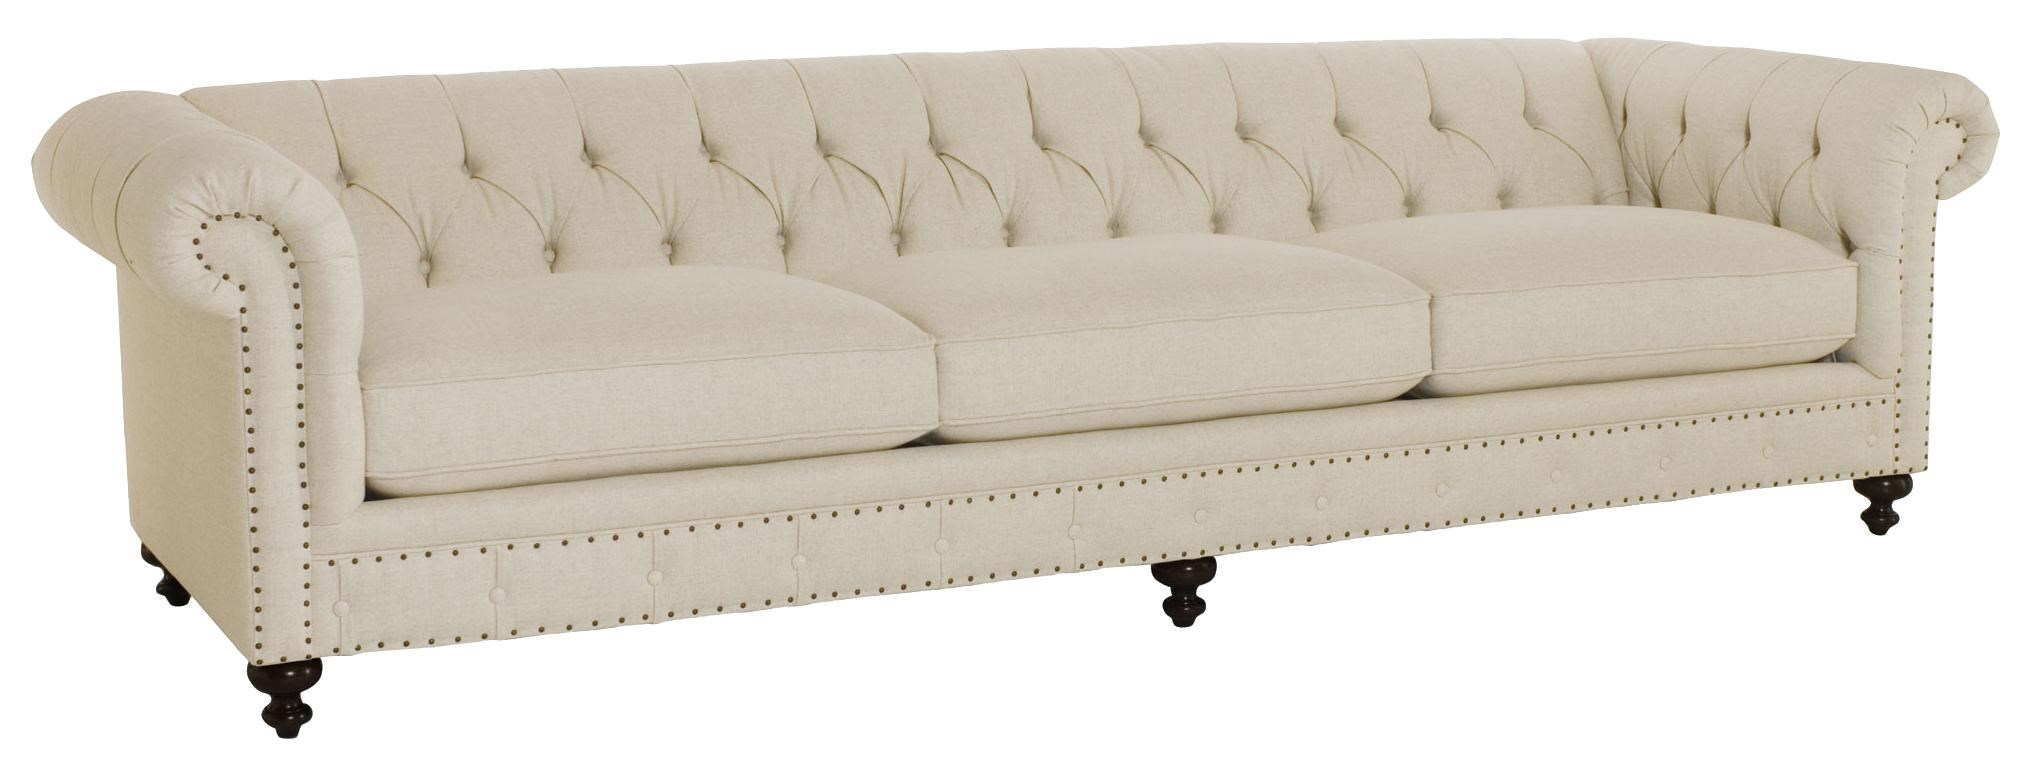 Bernhardt London Traditional Styled Long Sofa 116 5